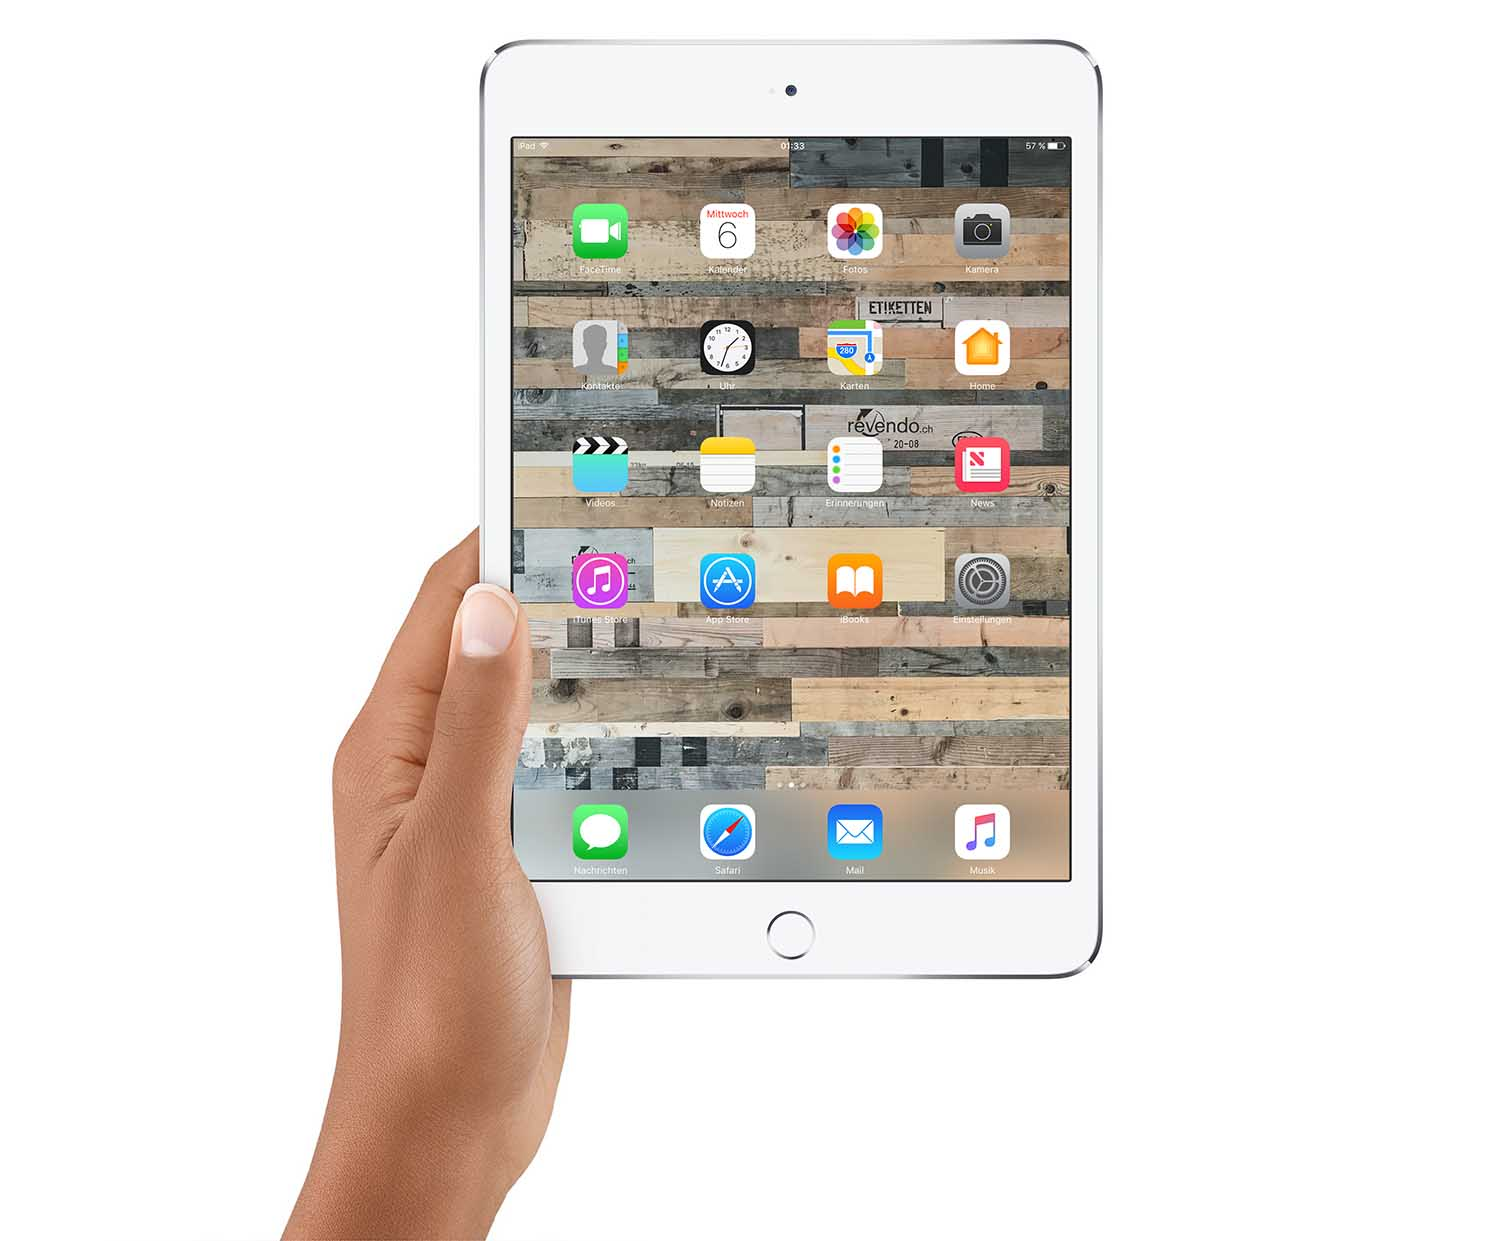 Ipad Mini Kaufen Apple Ipad Mini 3 16 Gb Wi Fi 43 Cellular Revendo Ch